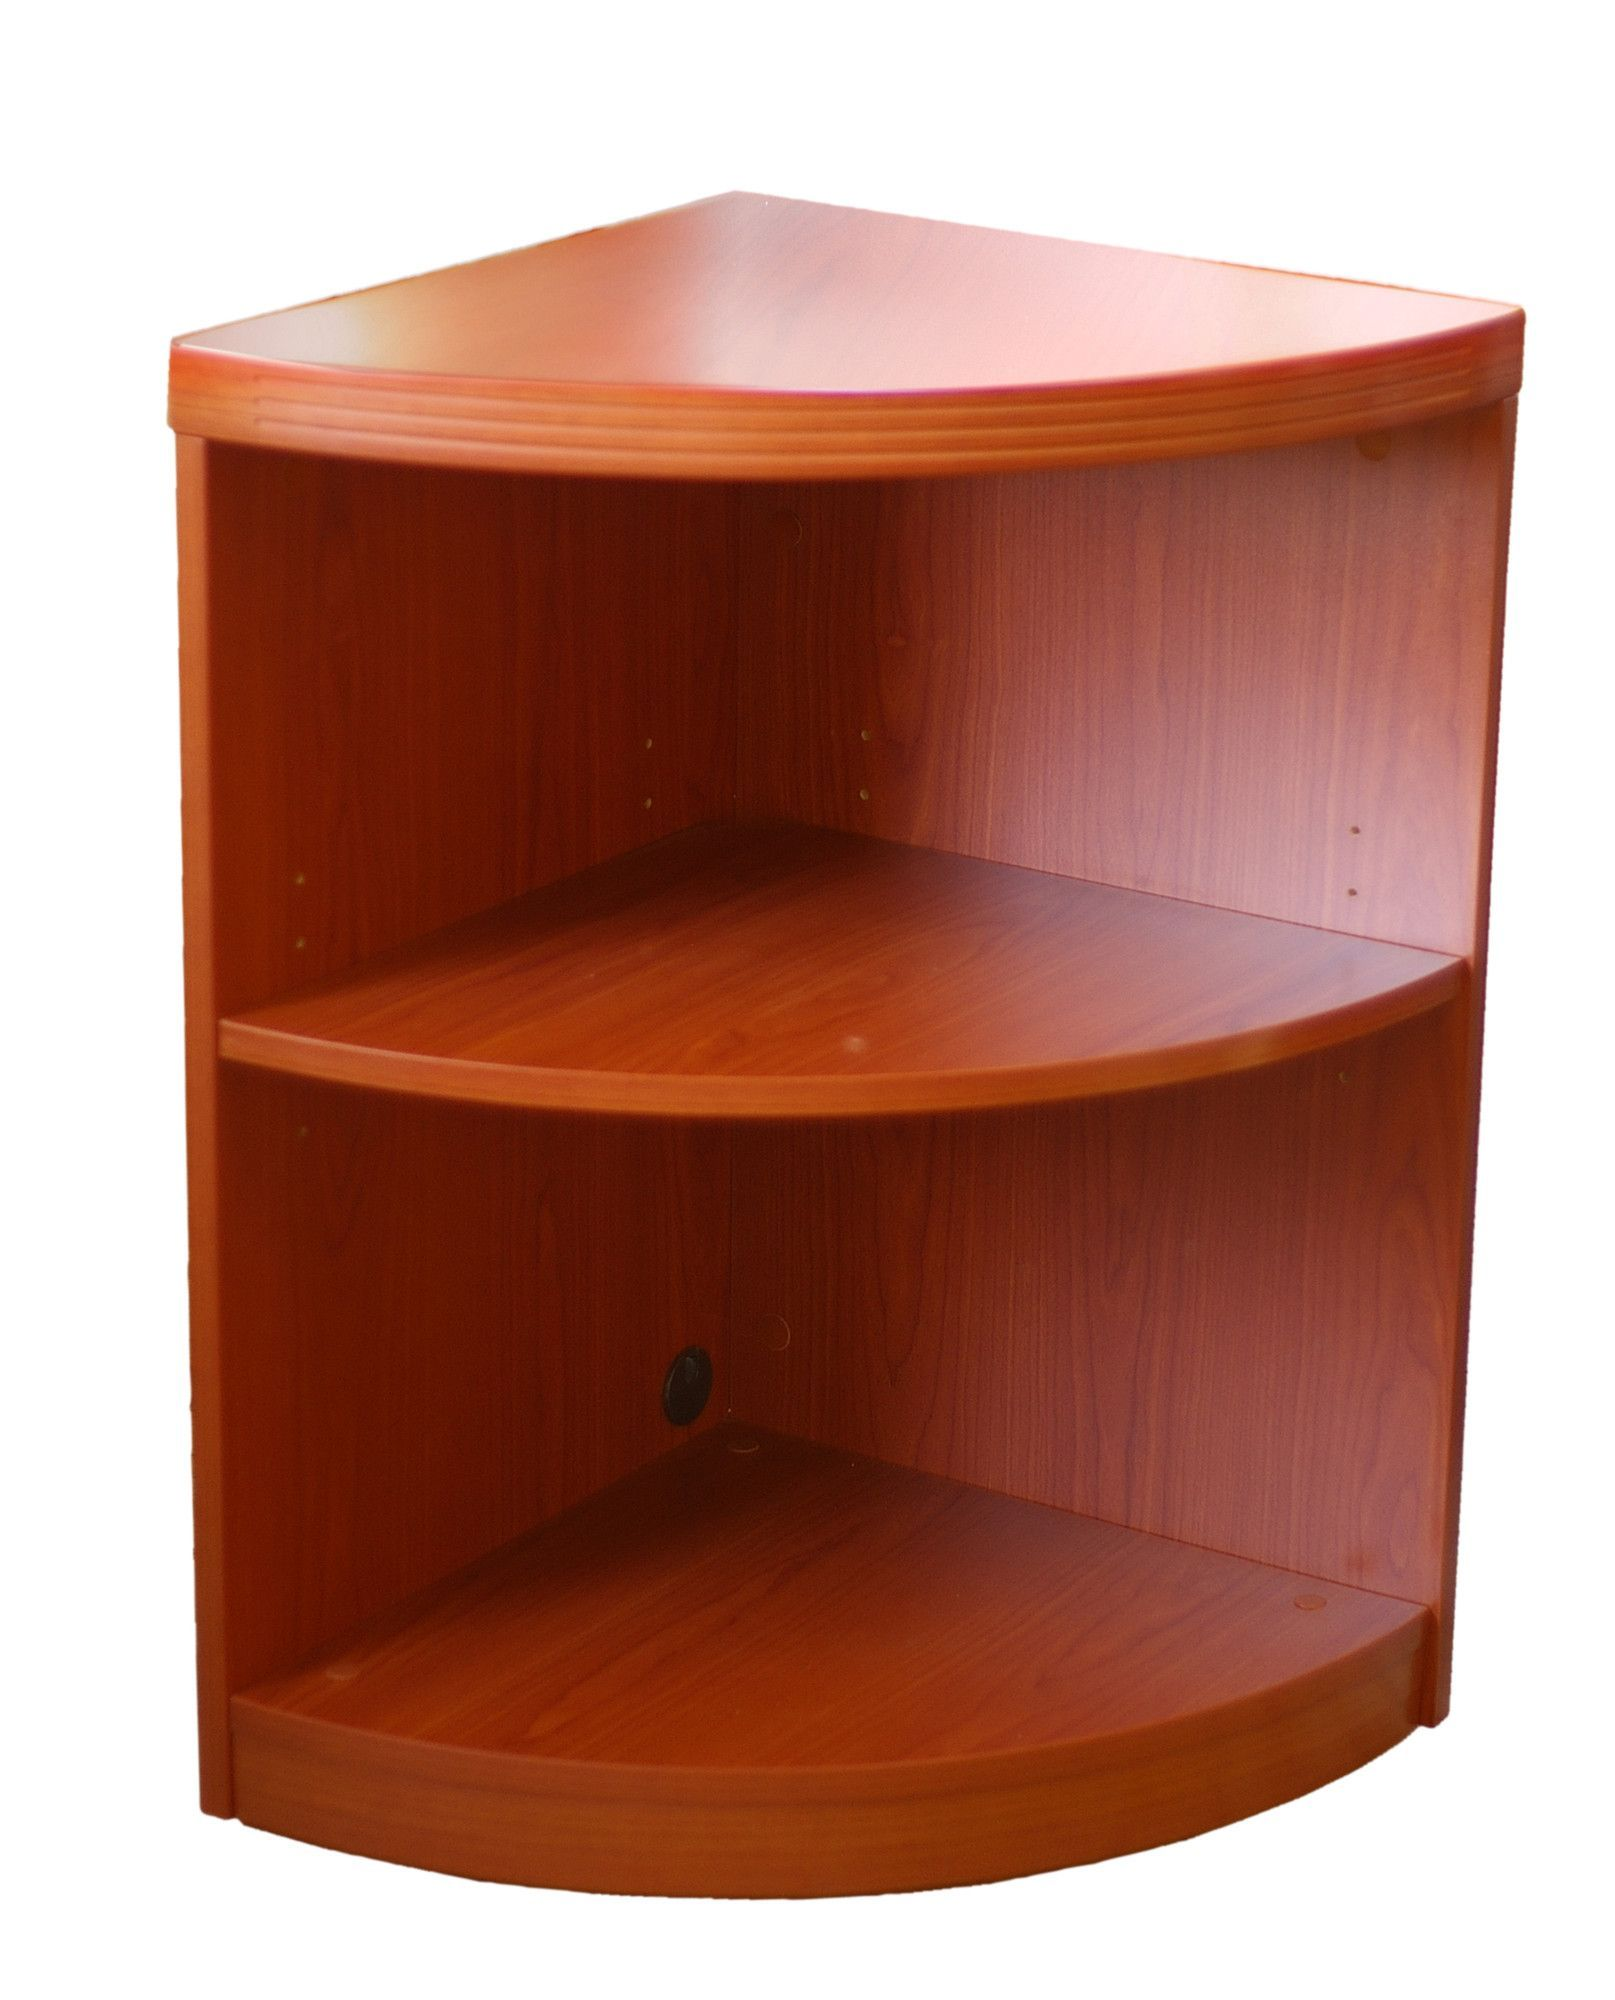 Features Shelves Contain Corner Mouse Holes For Vertical Cable Management Back Panel Provides Grommet For Wall Bookcase Shelves Home Office Furniture Desk